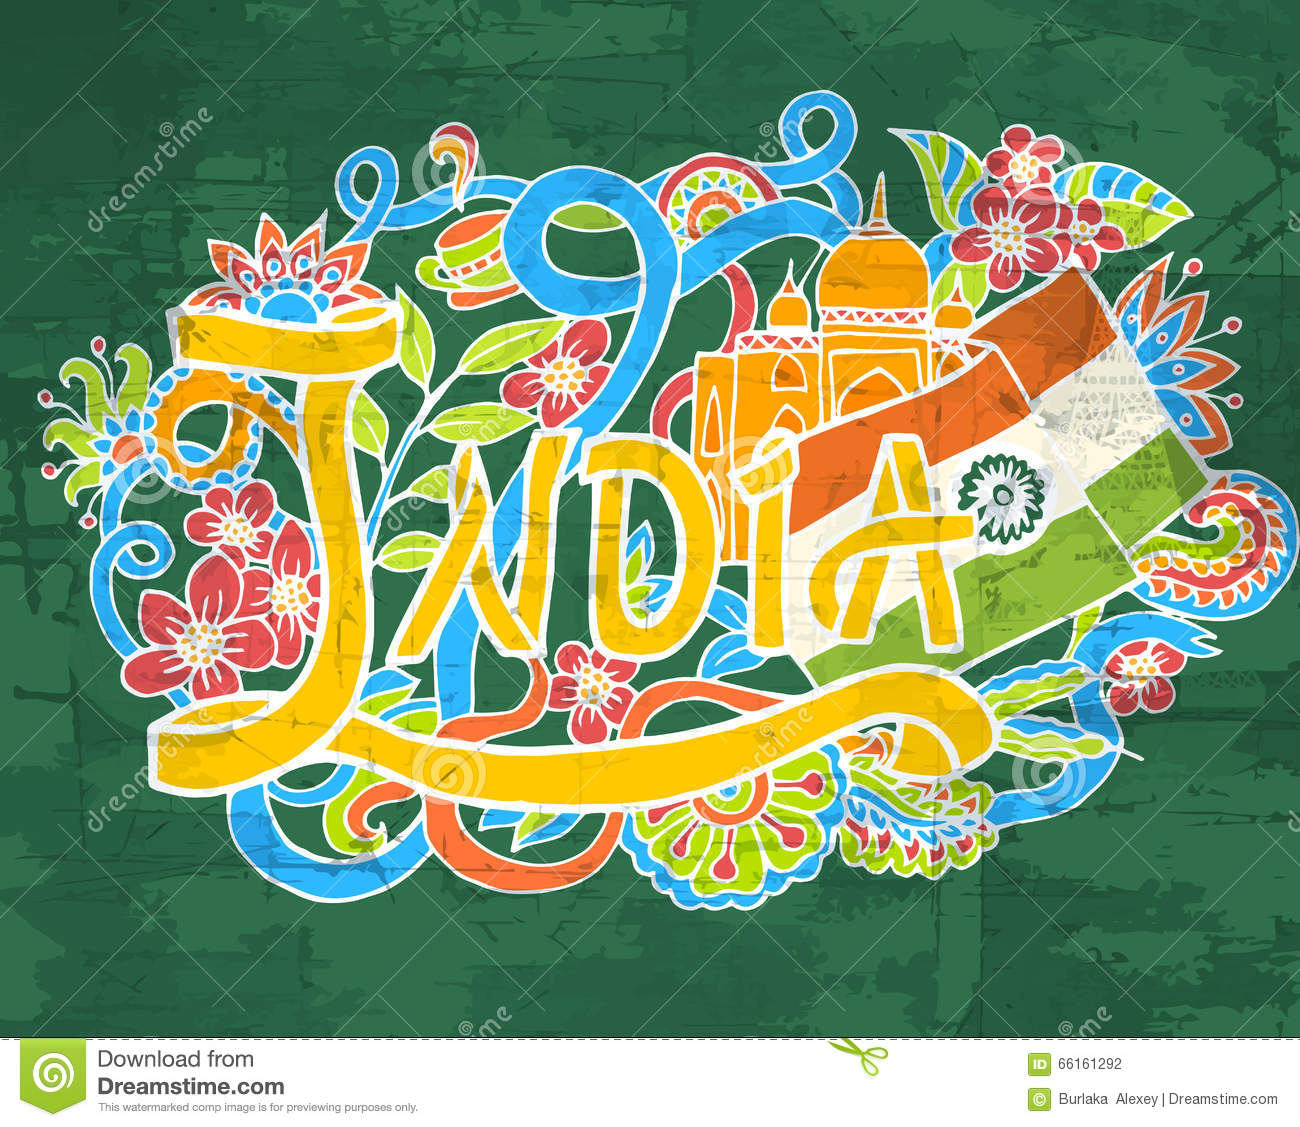 India Art Abstract Hand Lettering And Doodles Elements Background ...